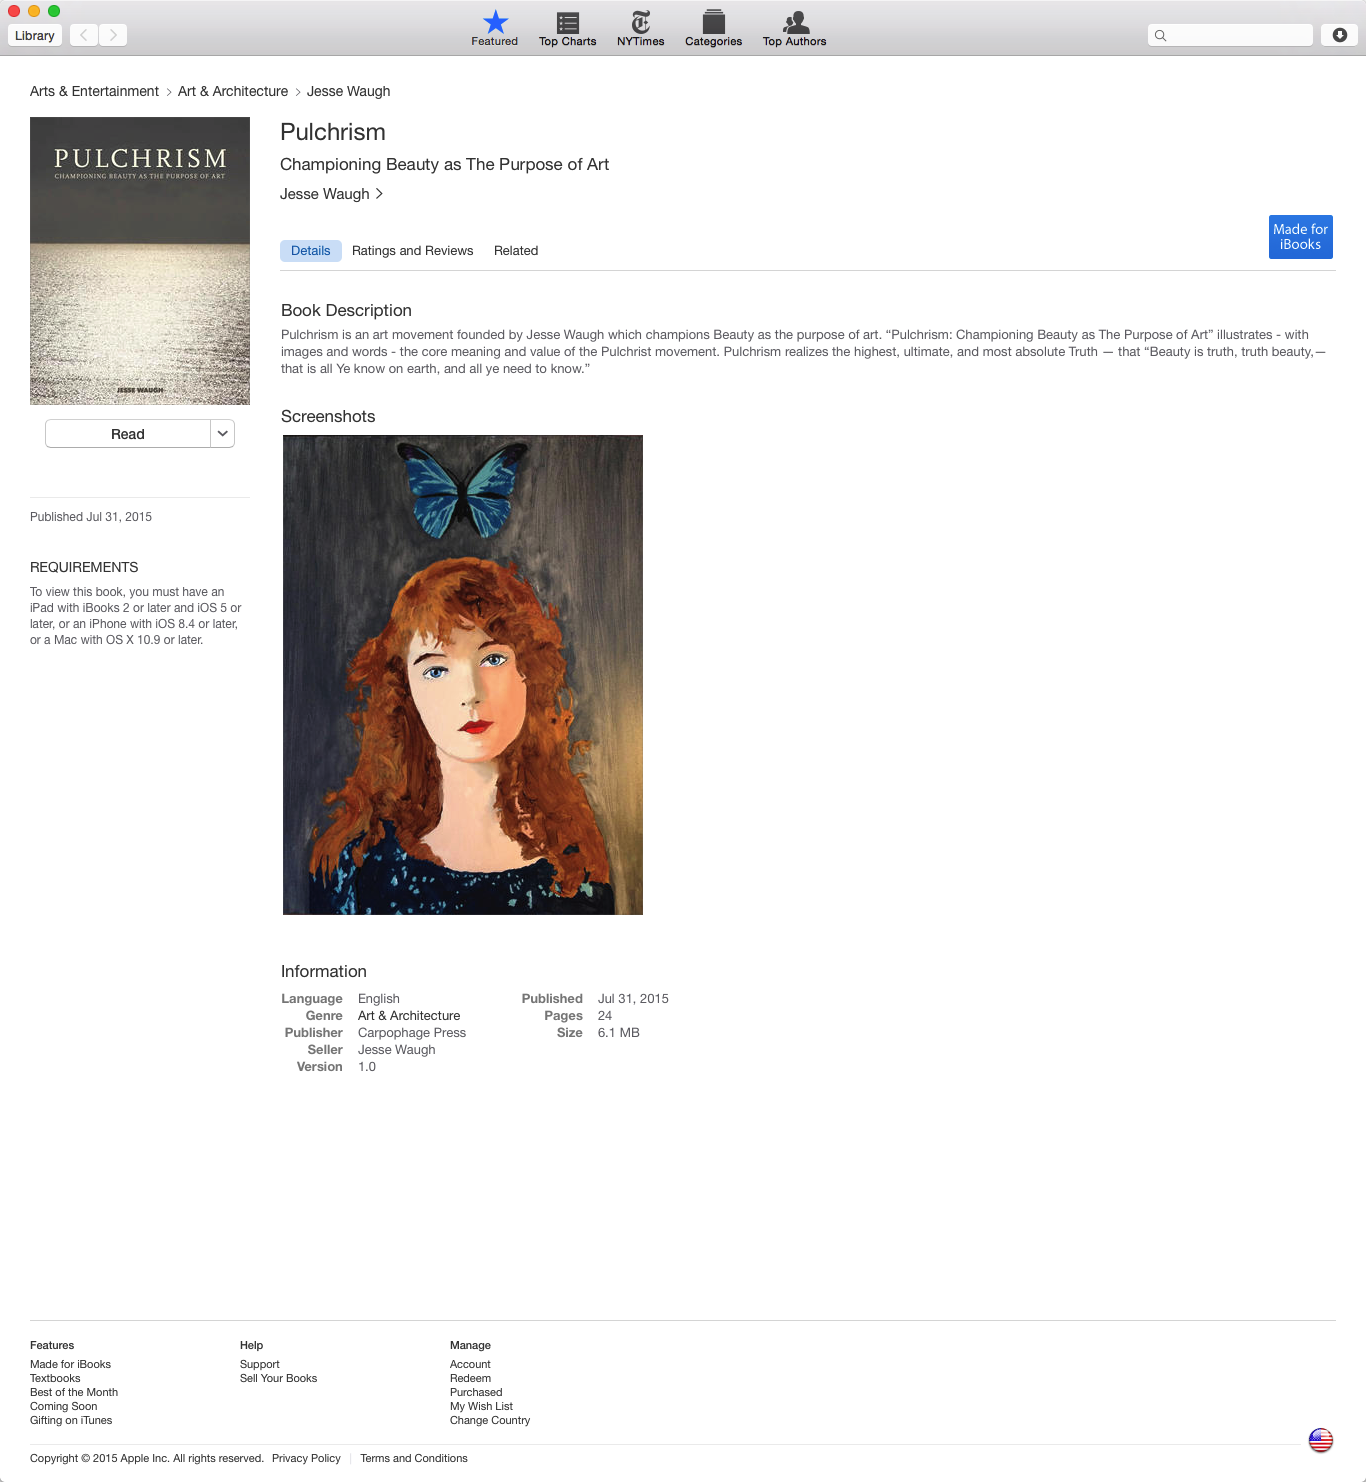 PULCHRISM: Championing Beauty as The Purpose of Art   on iBooks